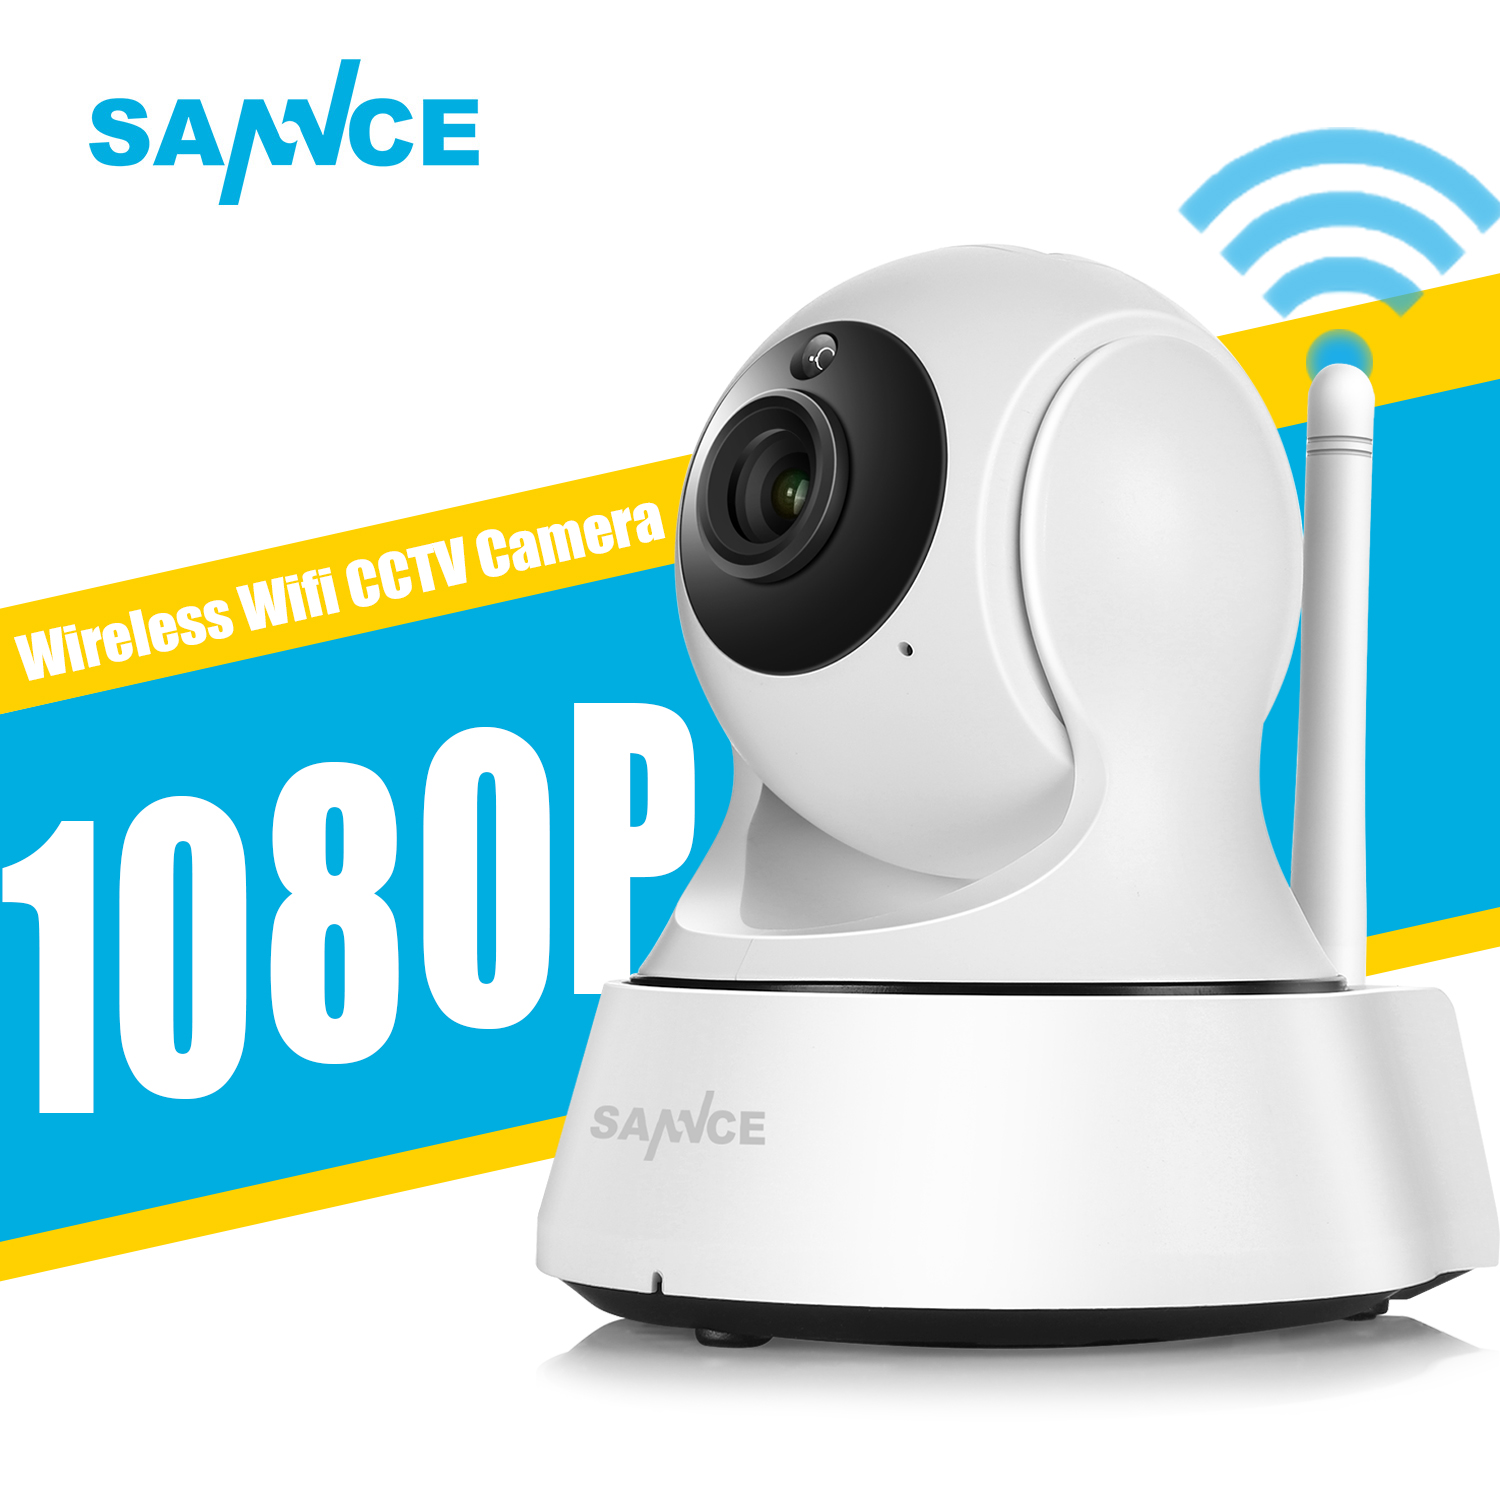 SANNCE 1080P Full HD Mini Wireless Wi-fi Camera Sucurity IP CCTV Camera Wifi Network Surveillance Smart IRCUT Night Vision Onvif new canon powershot g9x 20 2m full hd wi fi digital camera silver